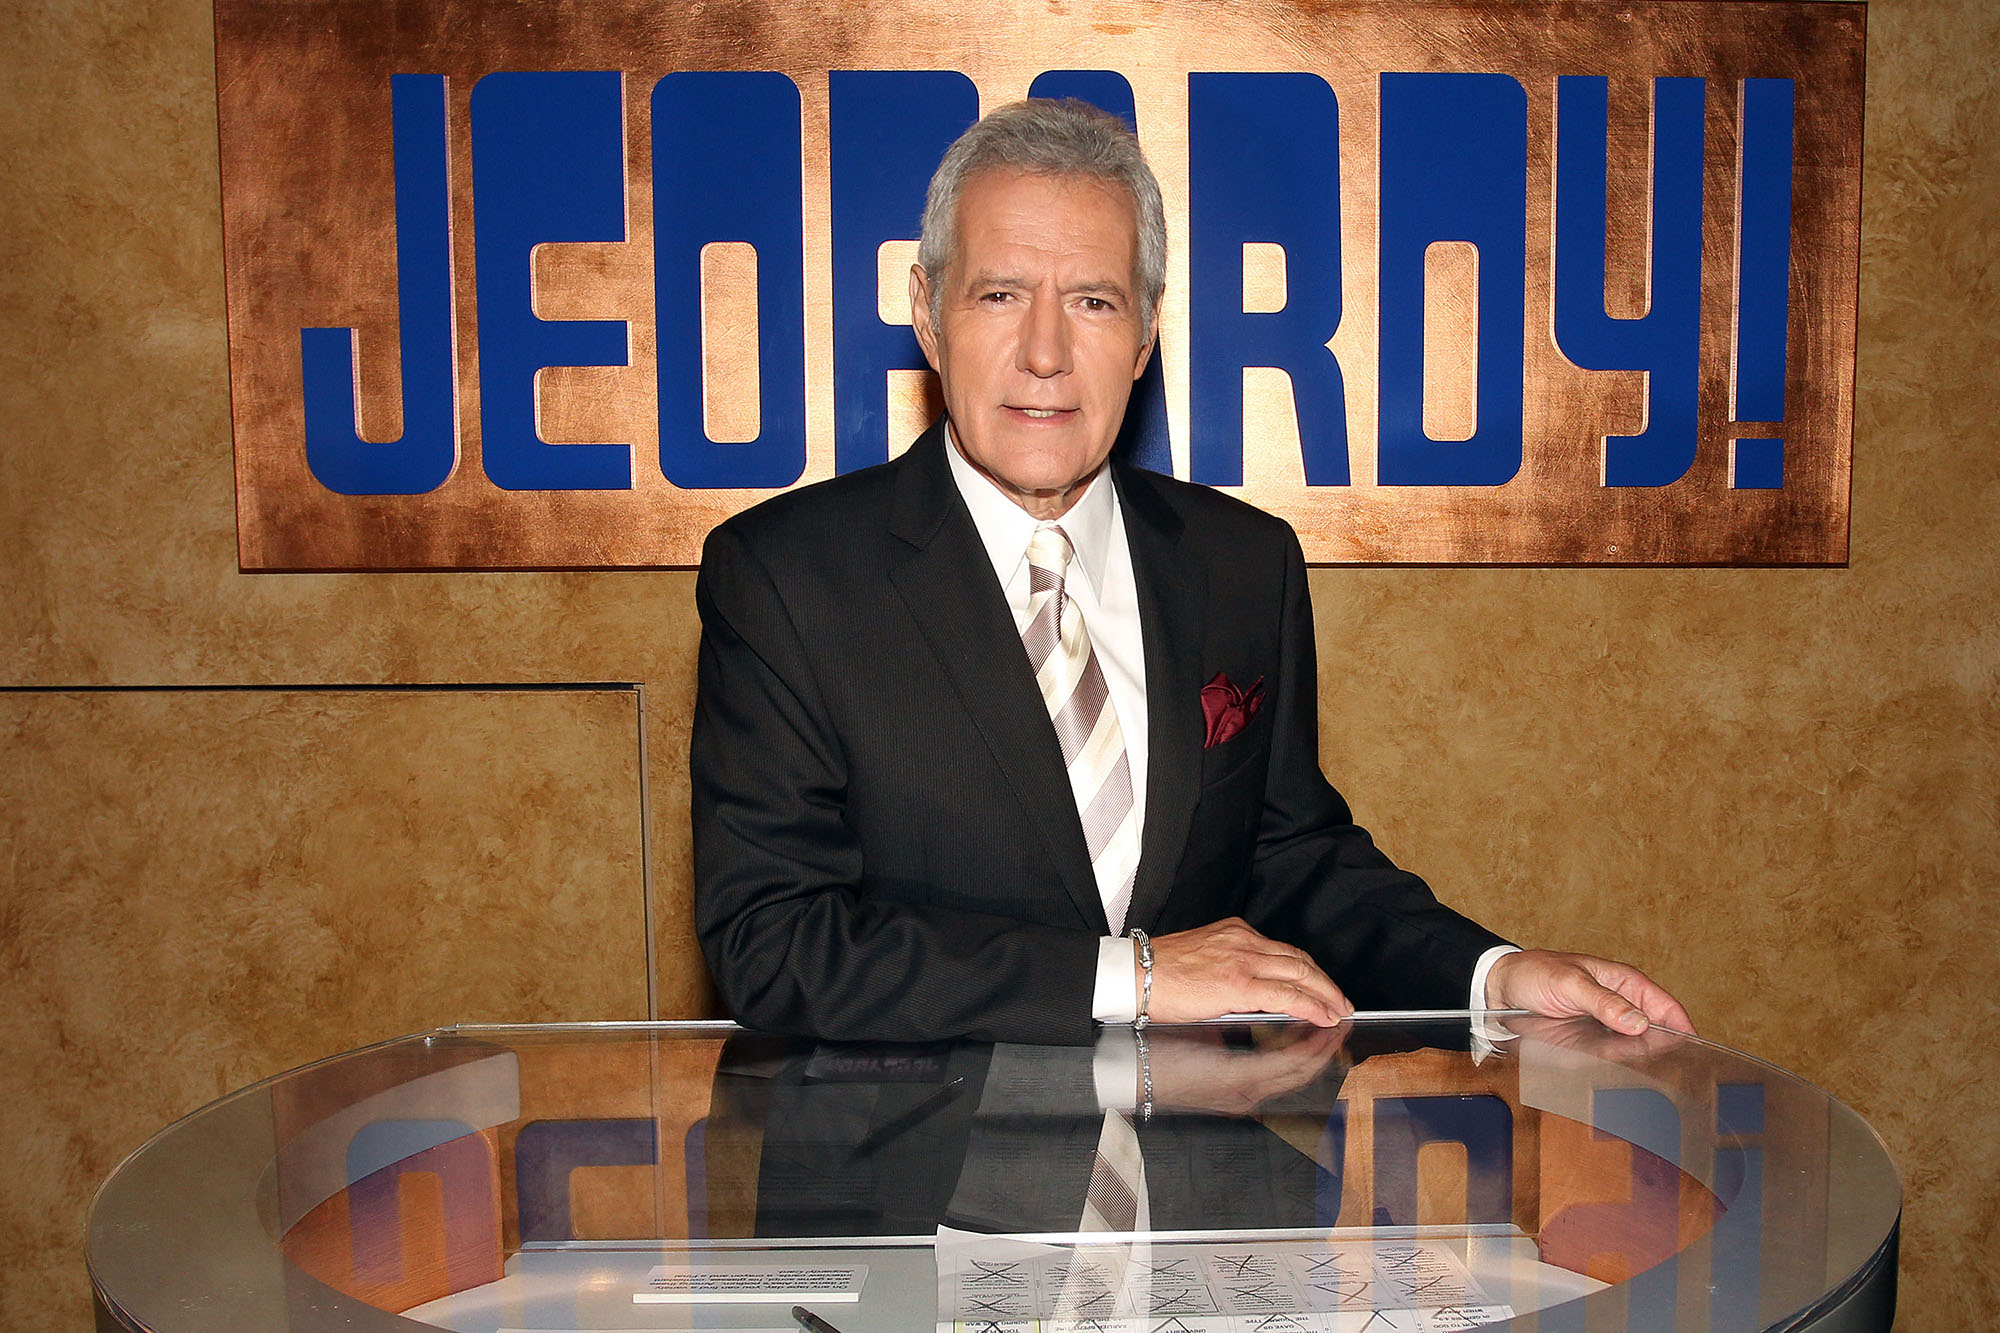 Alex Trebek cremated, ashes will remain with his wife at his home